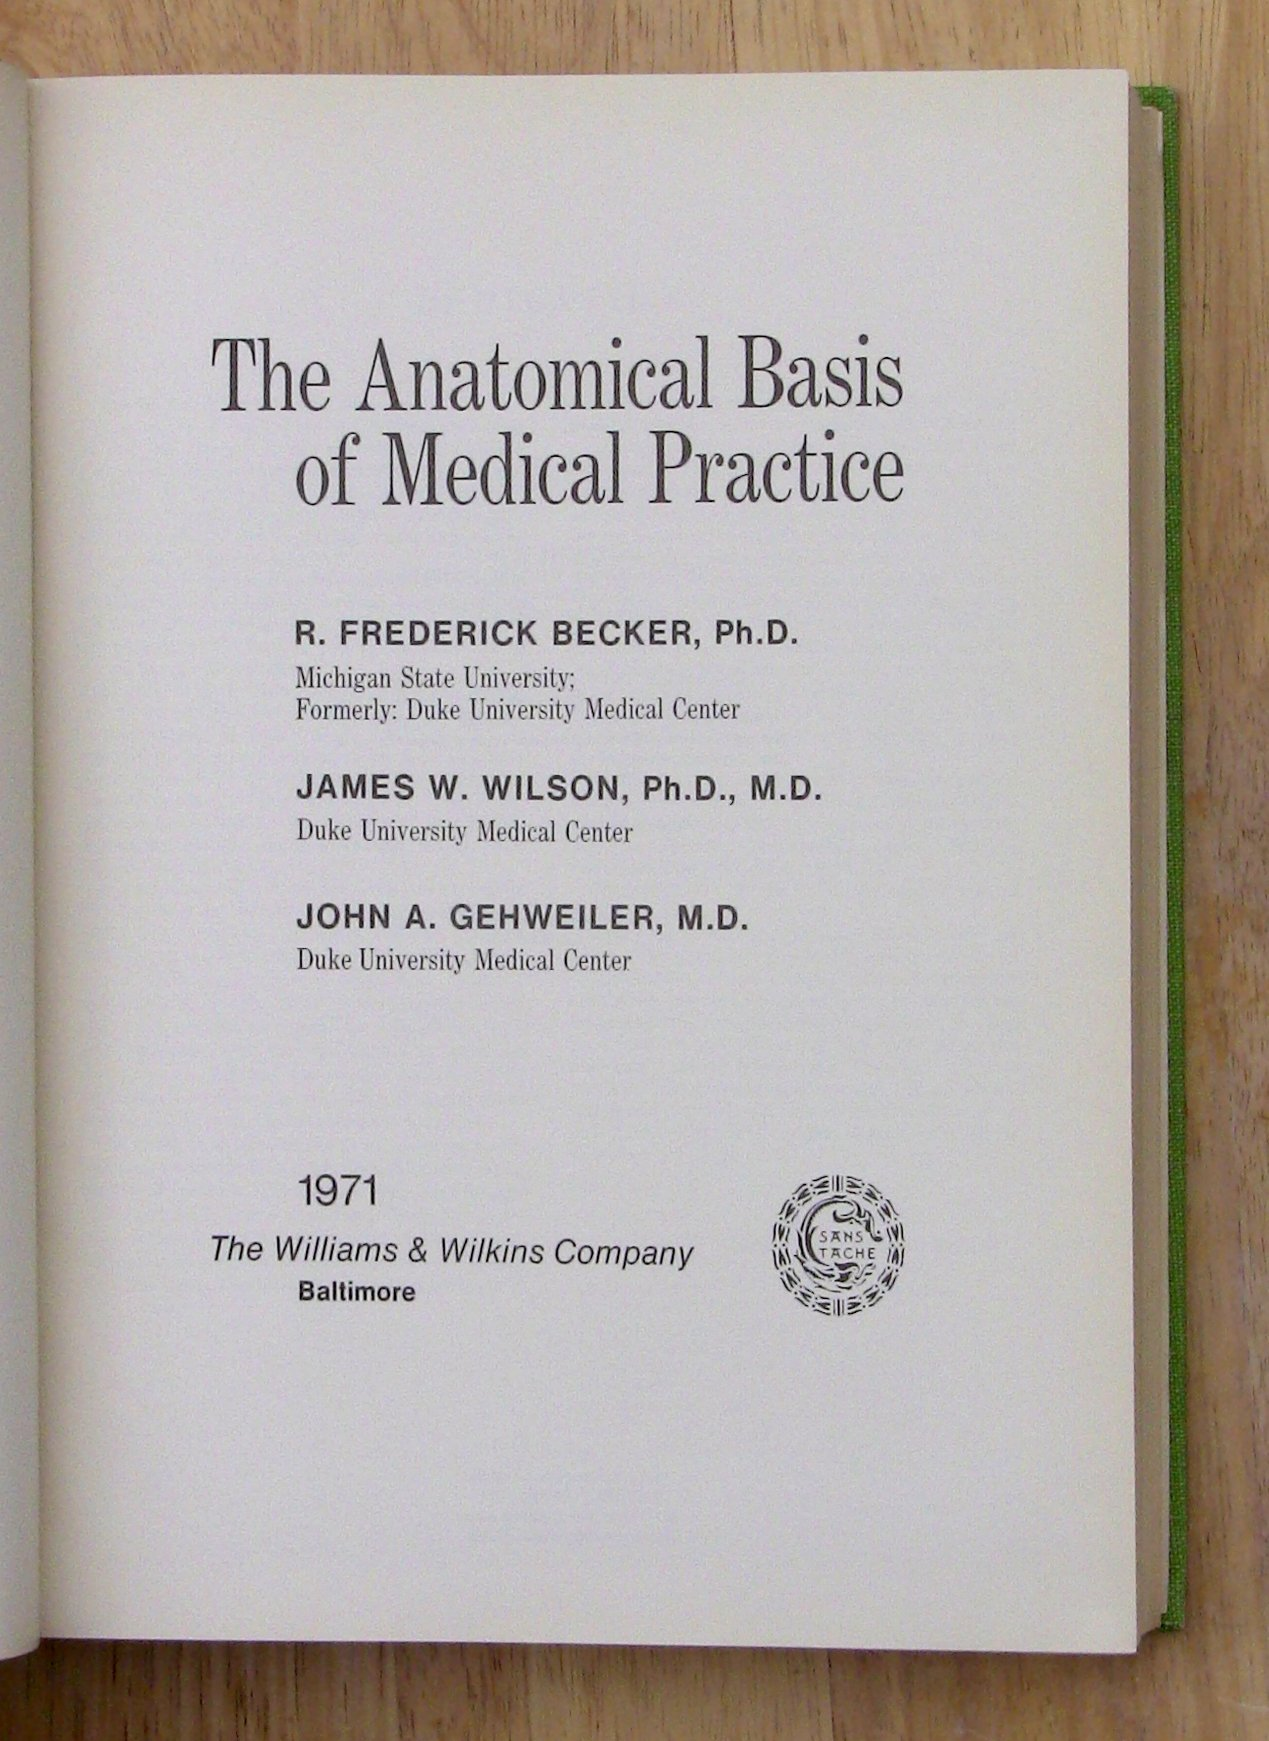 The anatomical basis of medical practice: R. Frederick Becker ...